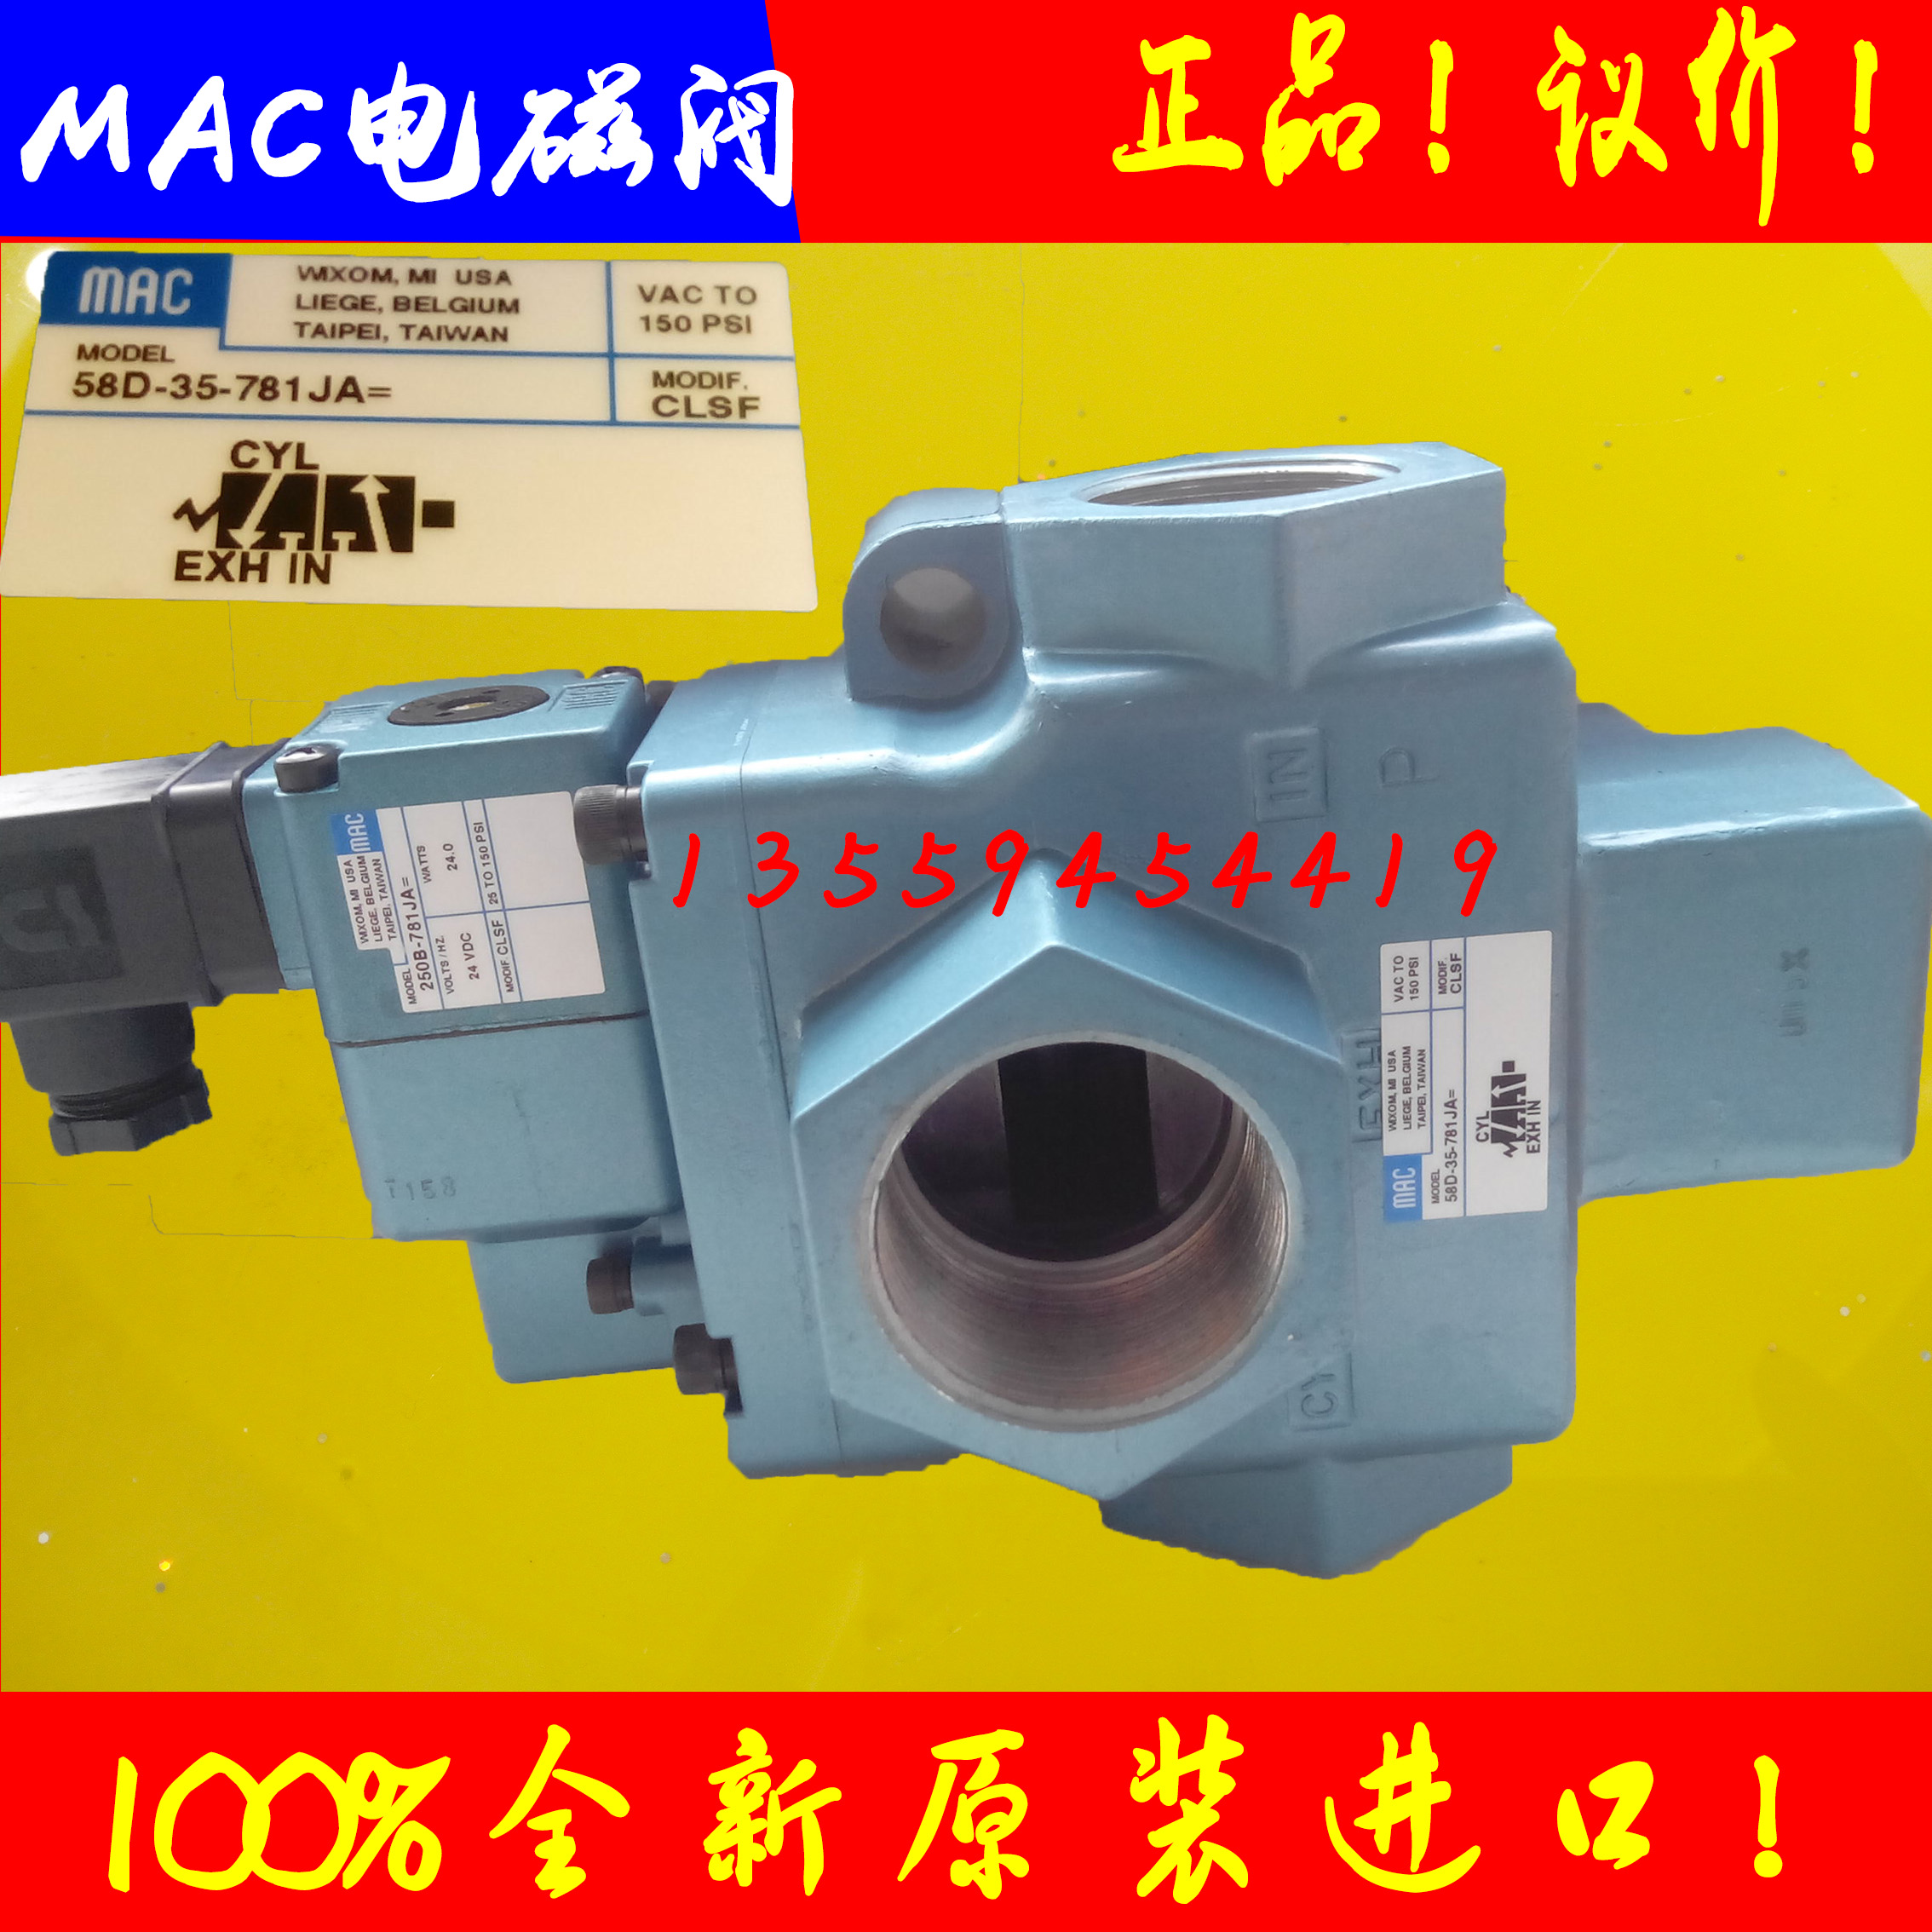 United States MAC solenoid valve 58D-35-781JA (MOD:CLSF original quality package mail contract order)